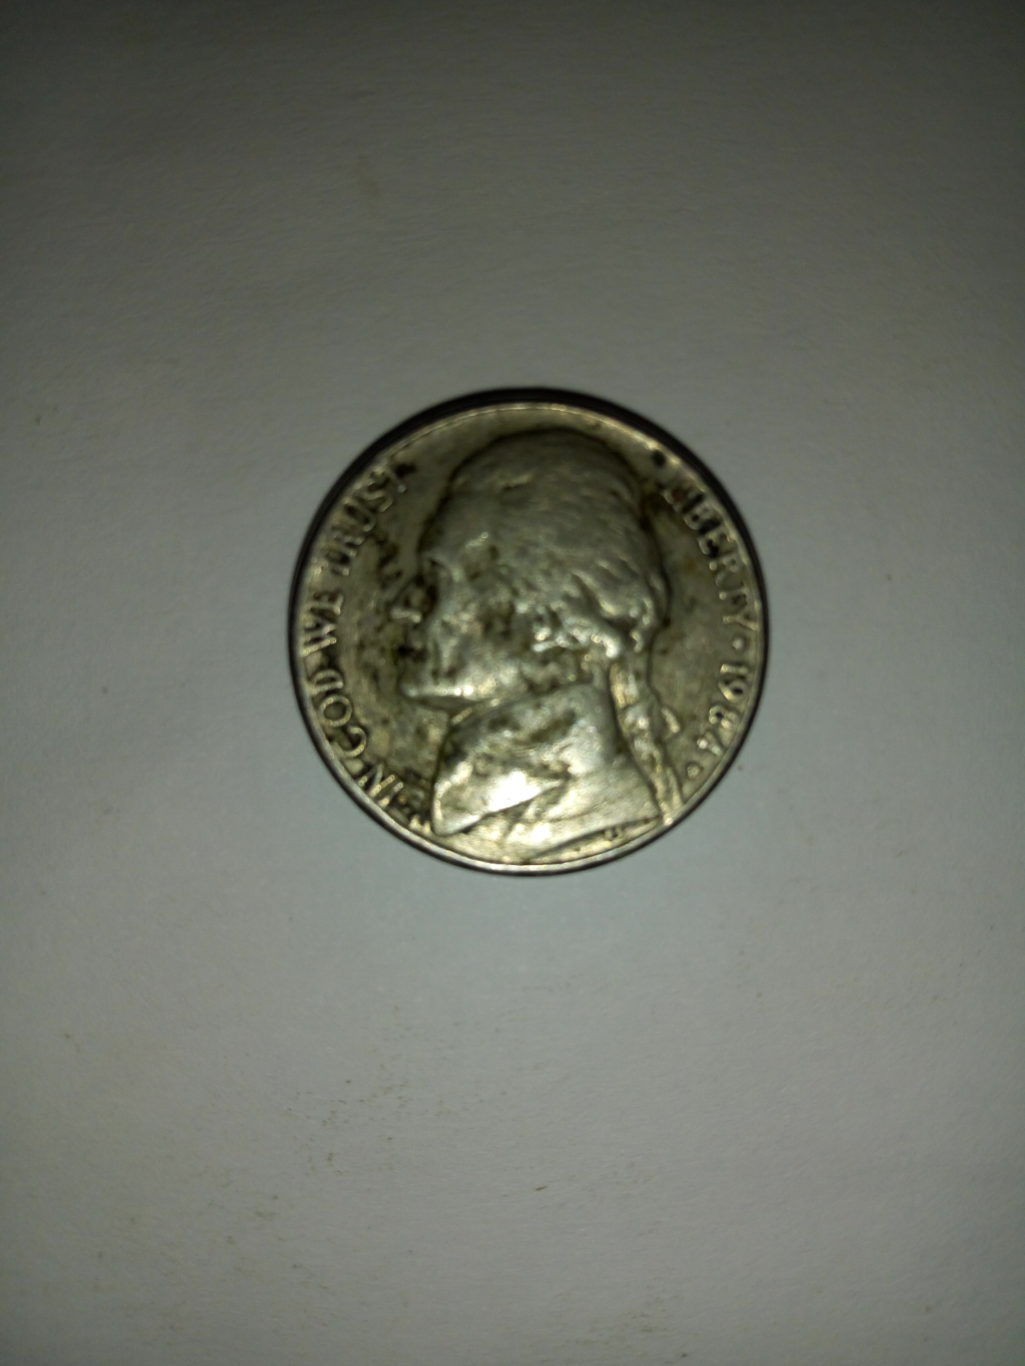 1984_united States of america 5 cents